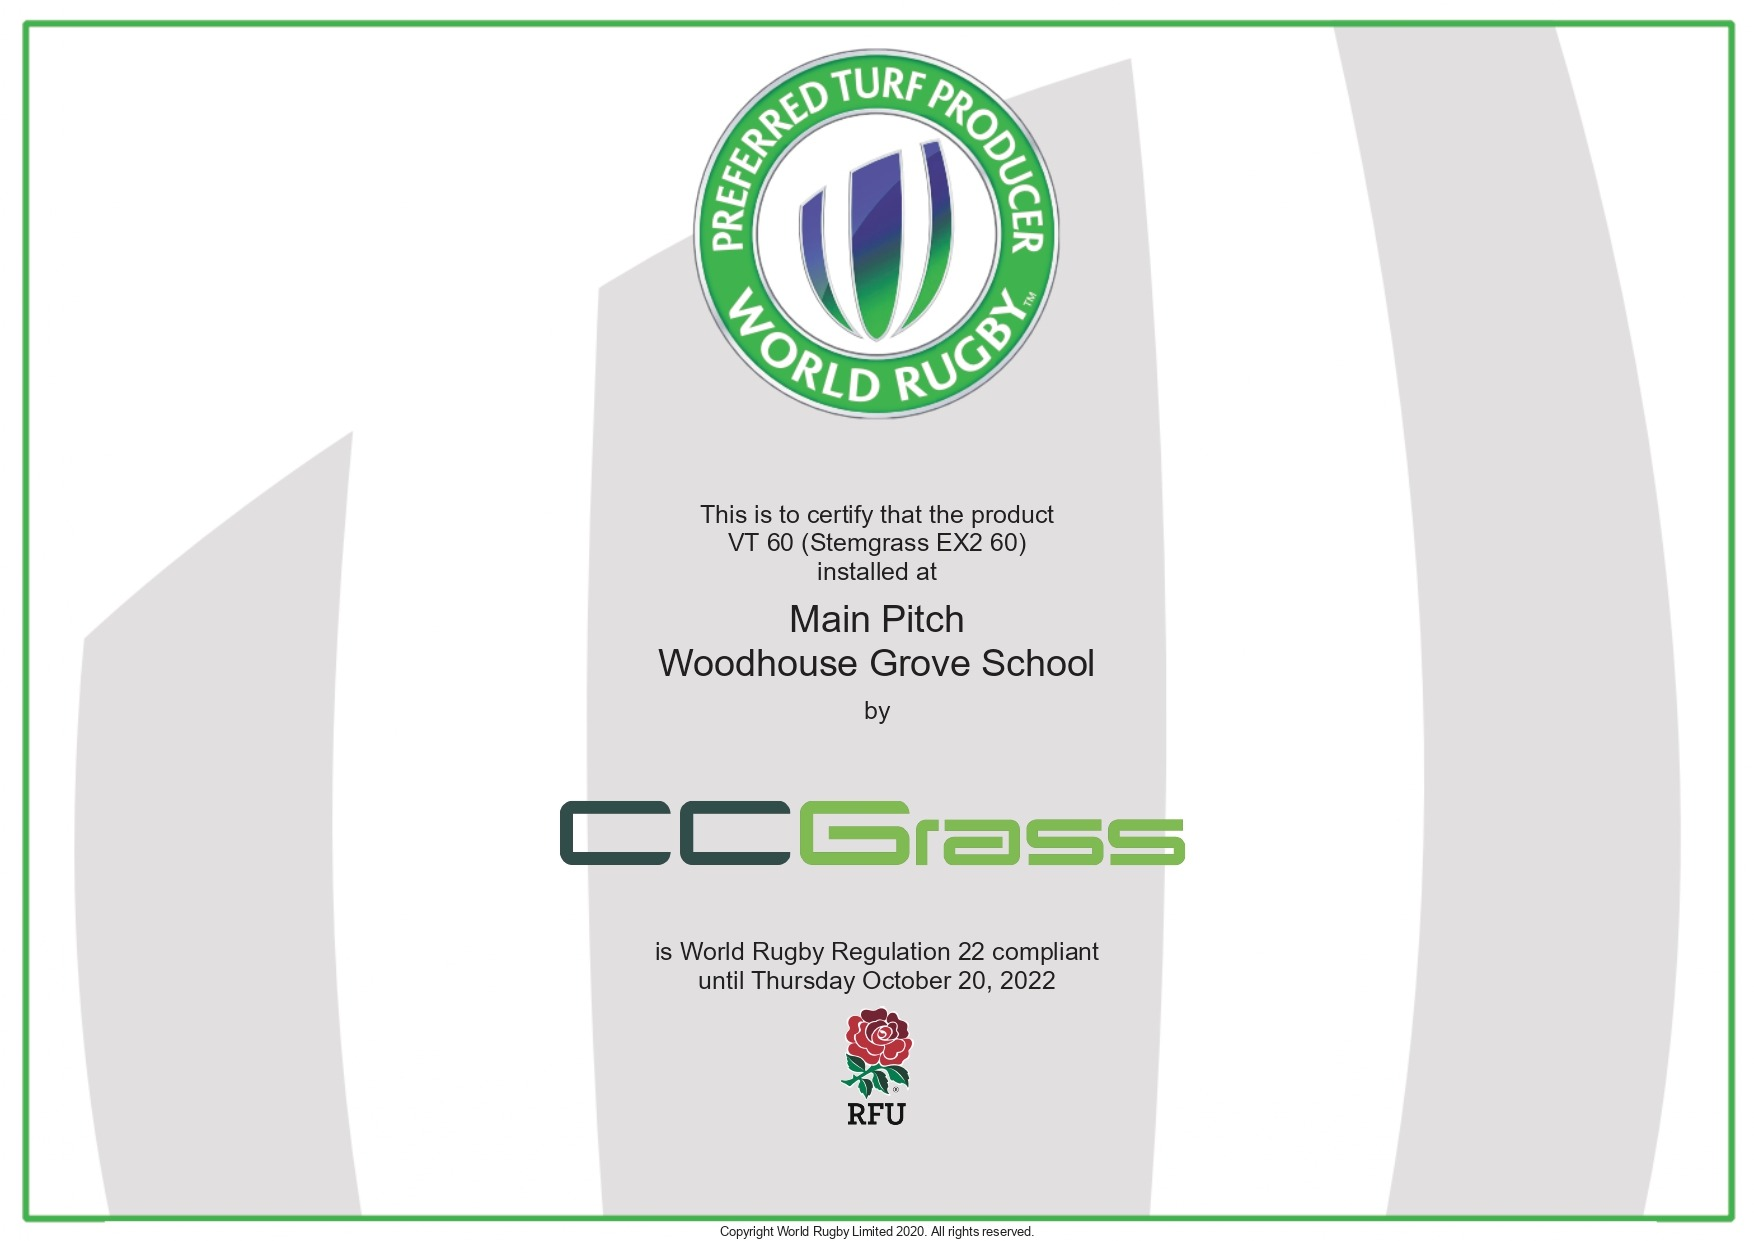 CCGrass, Woodhouse Grove School, World Rugby certification